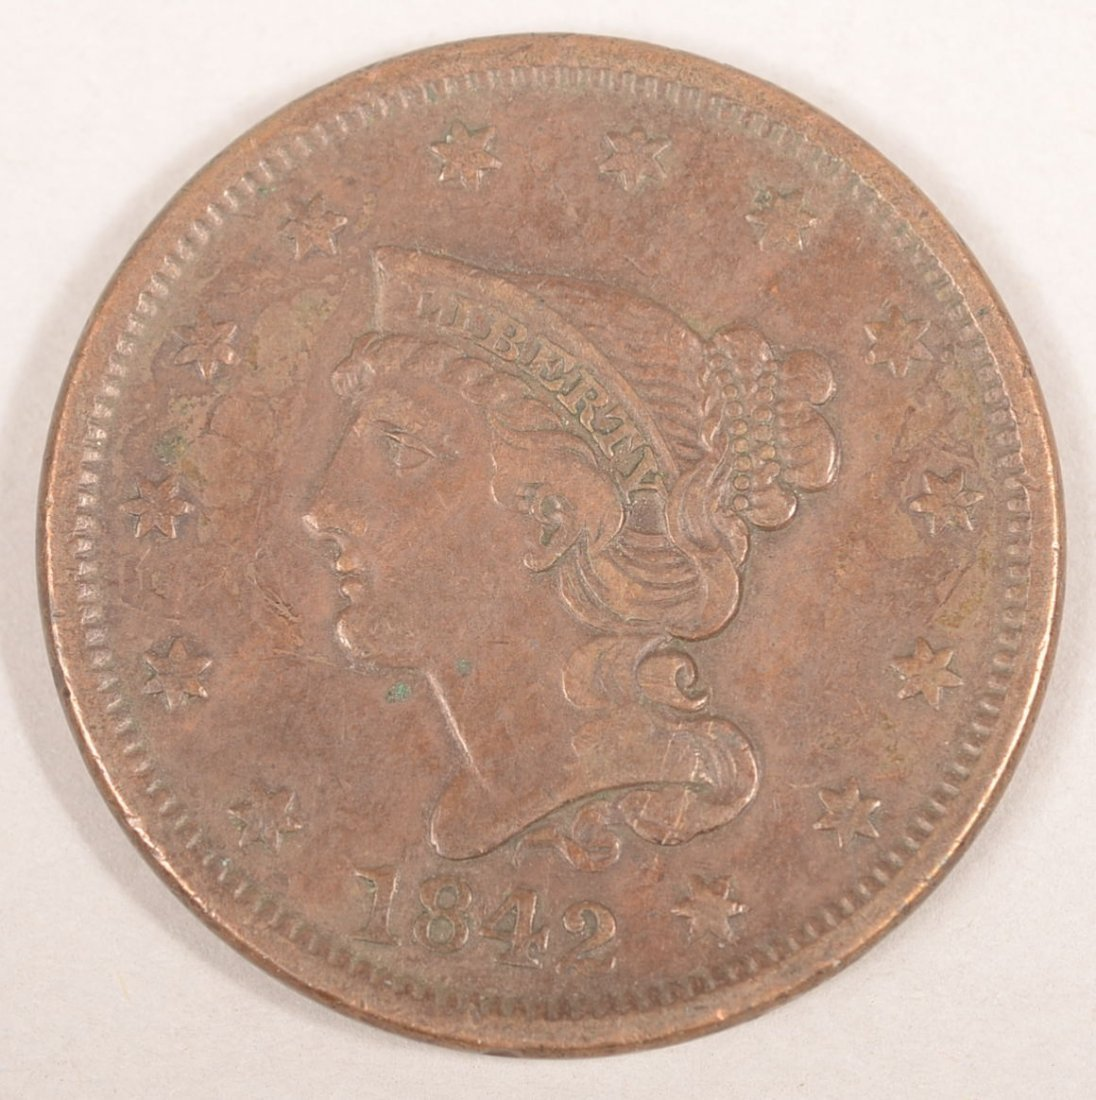 1842 LARGE CENT(LARGE DATE)